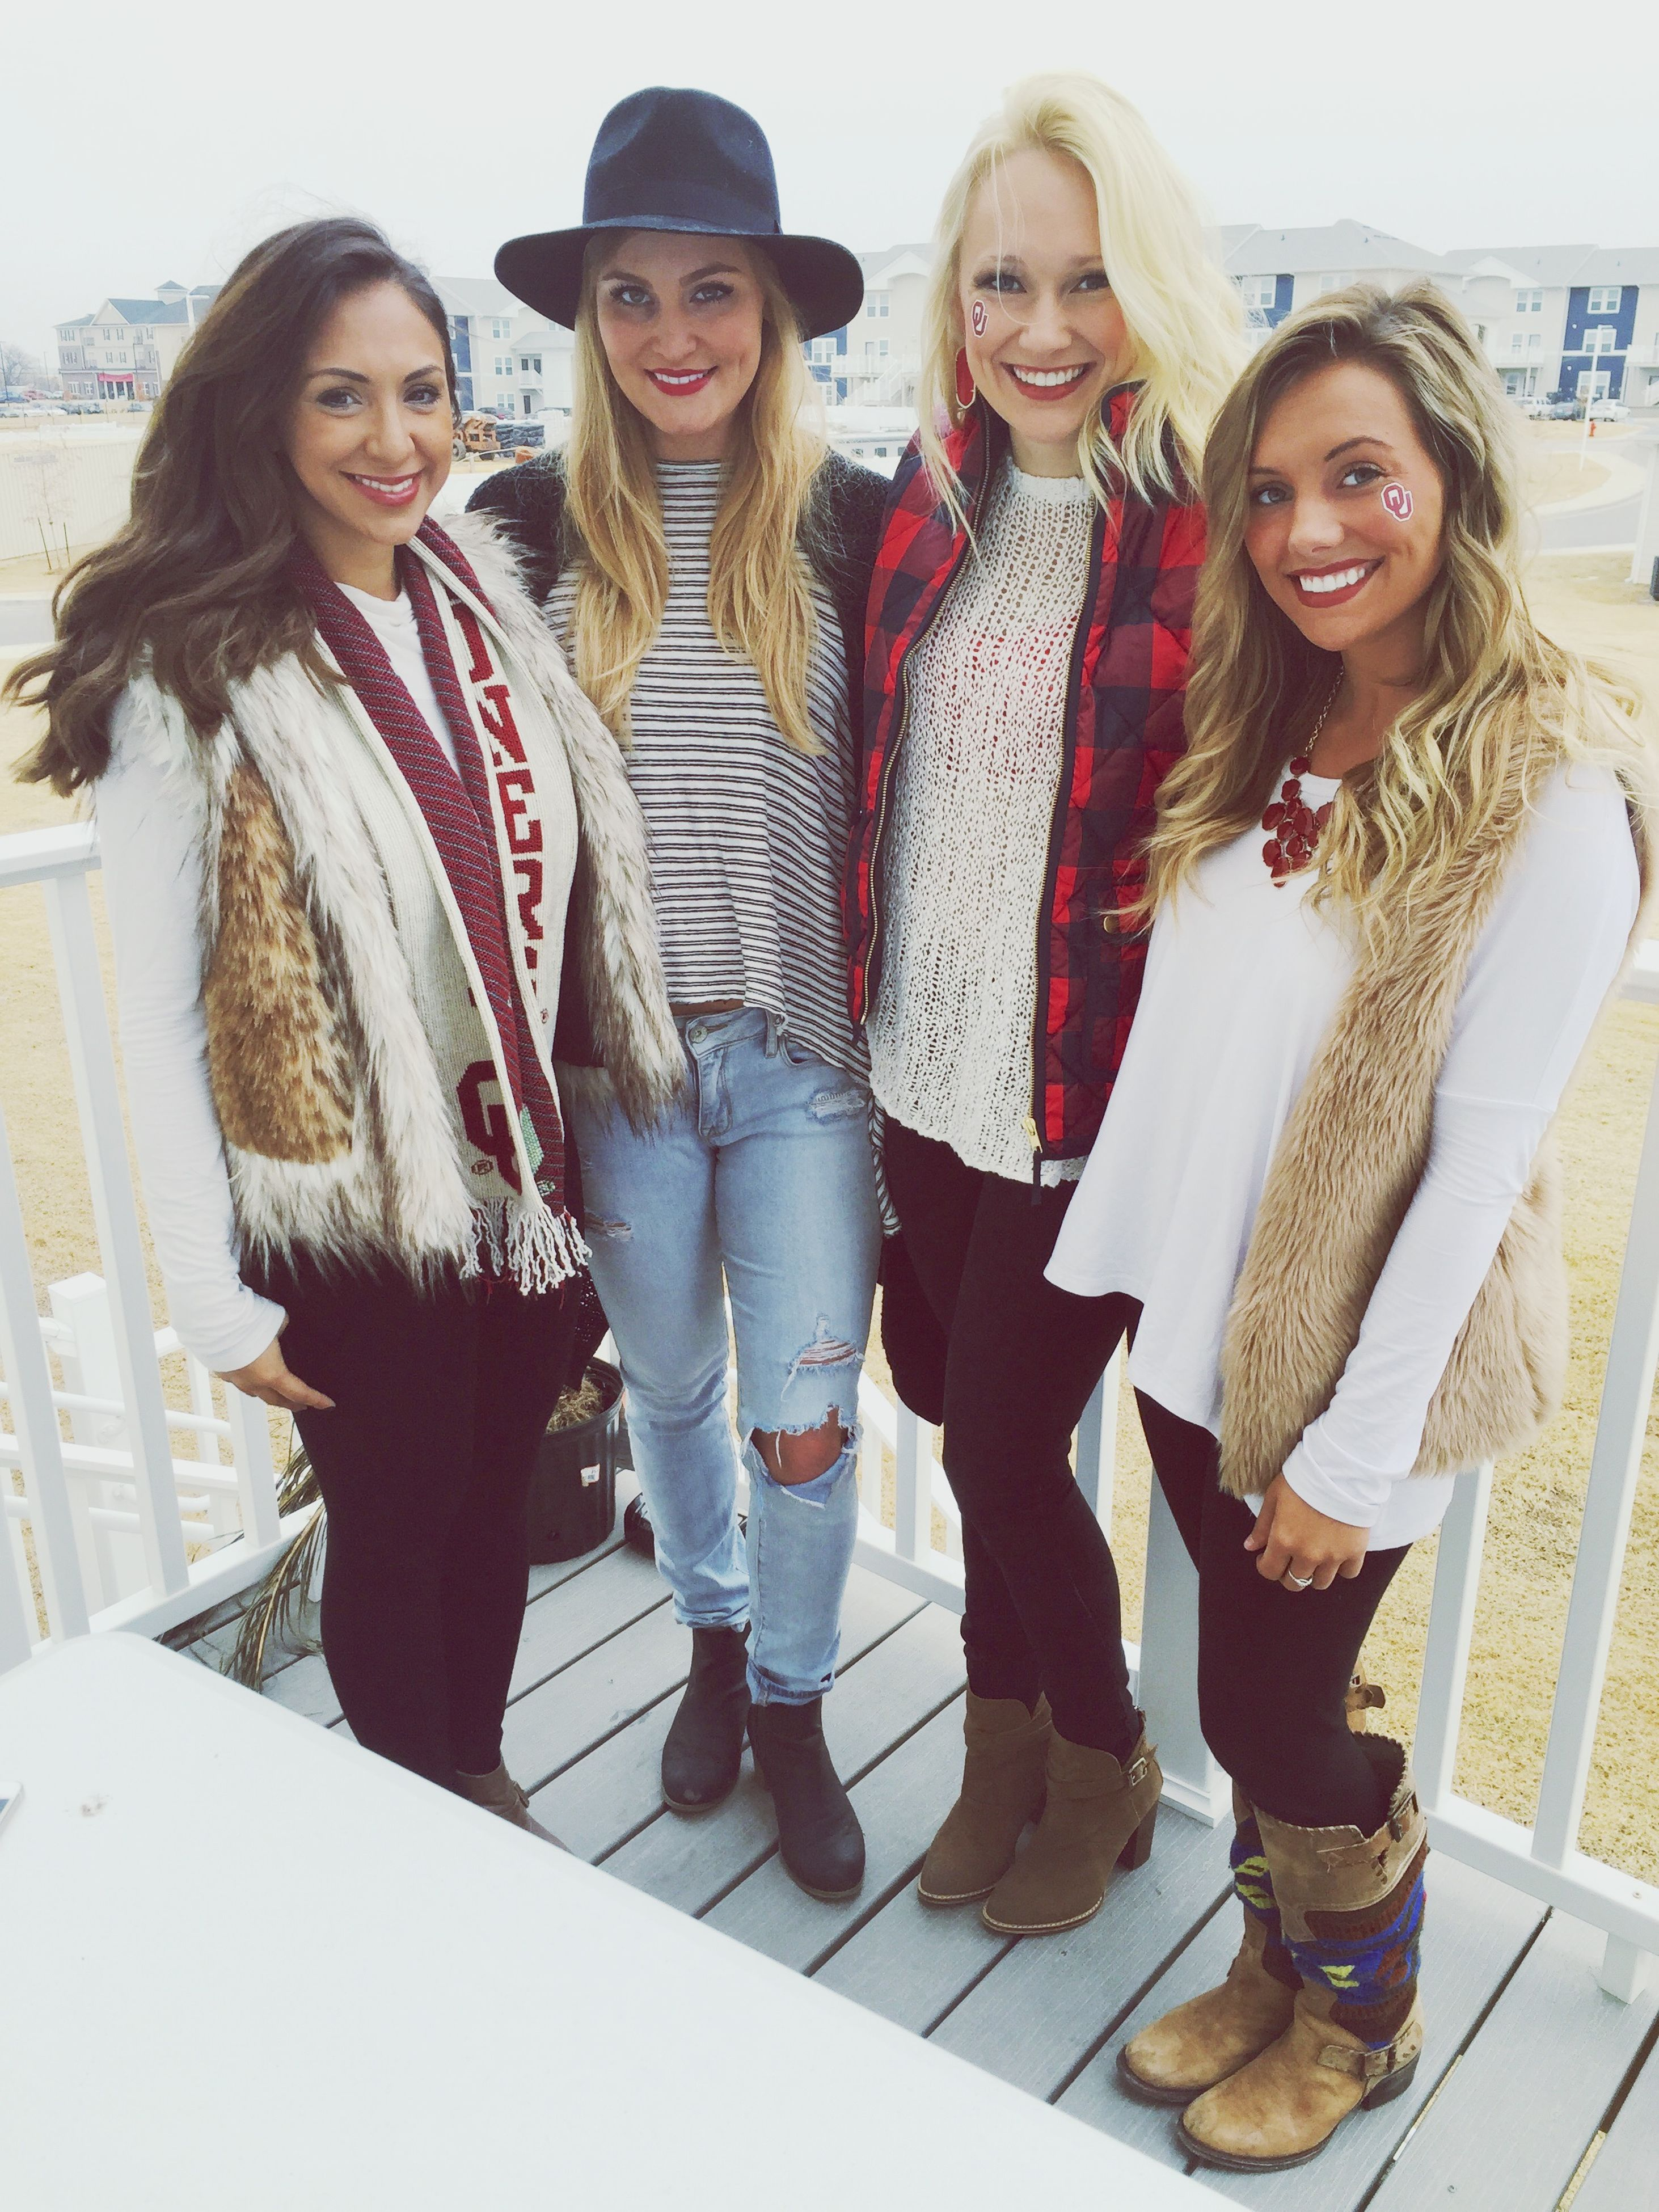 togetherness, lifestyles, leisure activity, person, bonding, portrait, smiling, happiness, casual clothing, looking at camera, young adult, friendship, front view, young women, love, toothy smile, standing